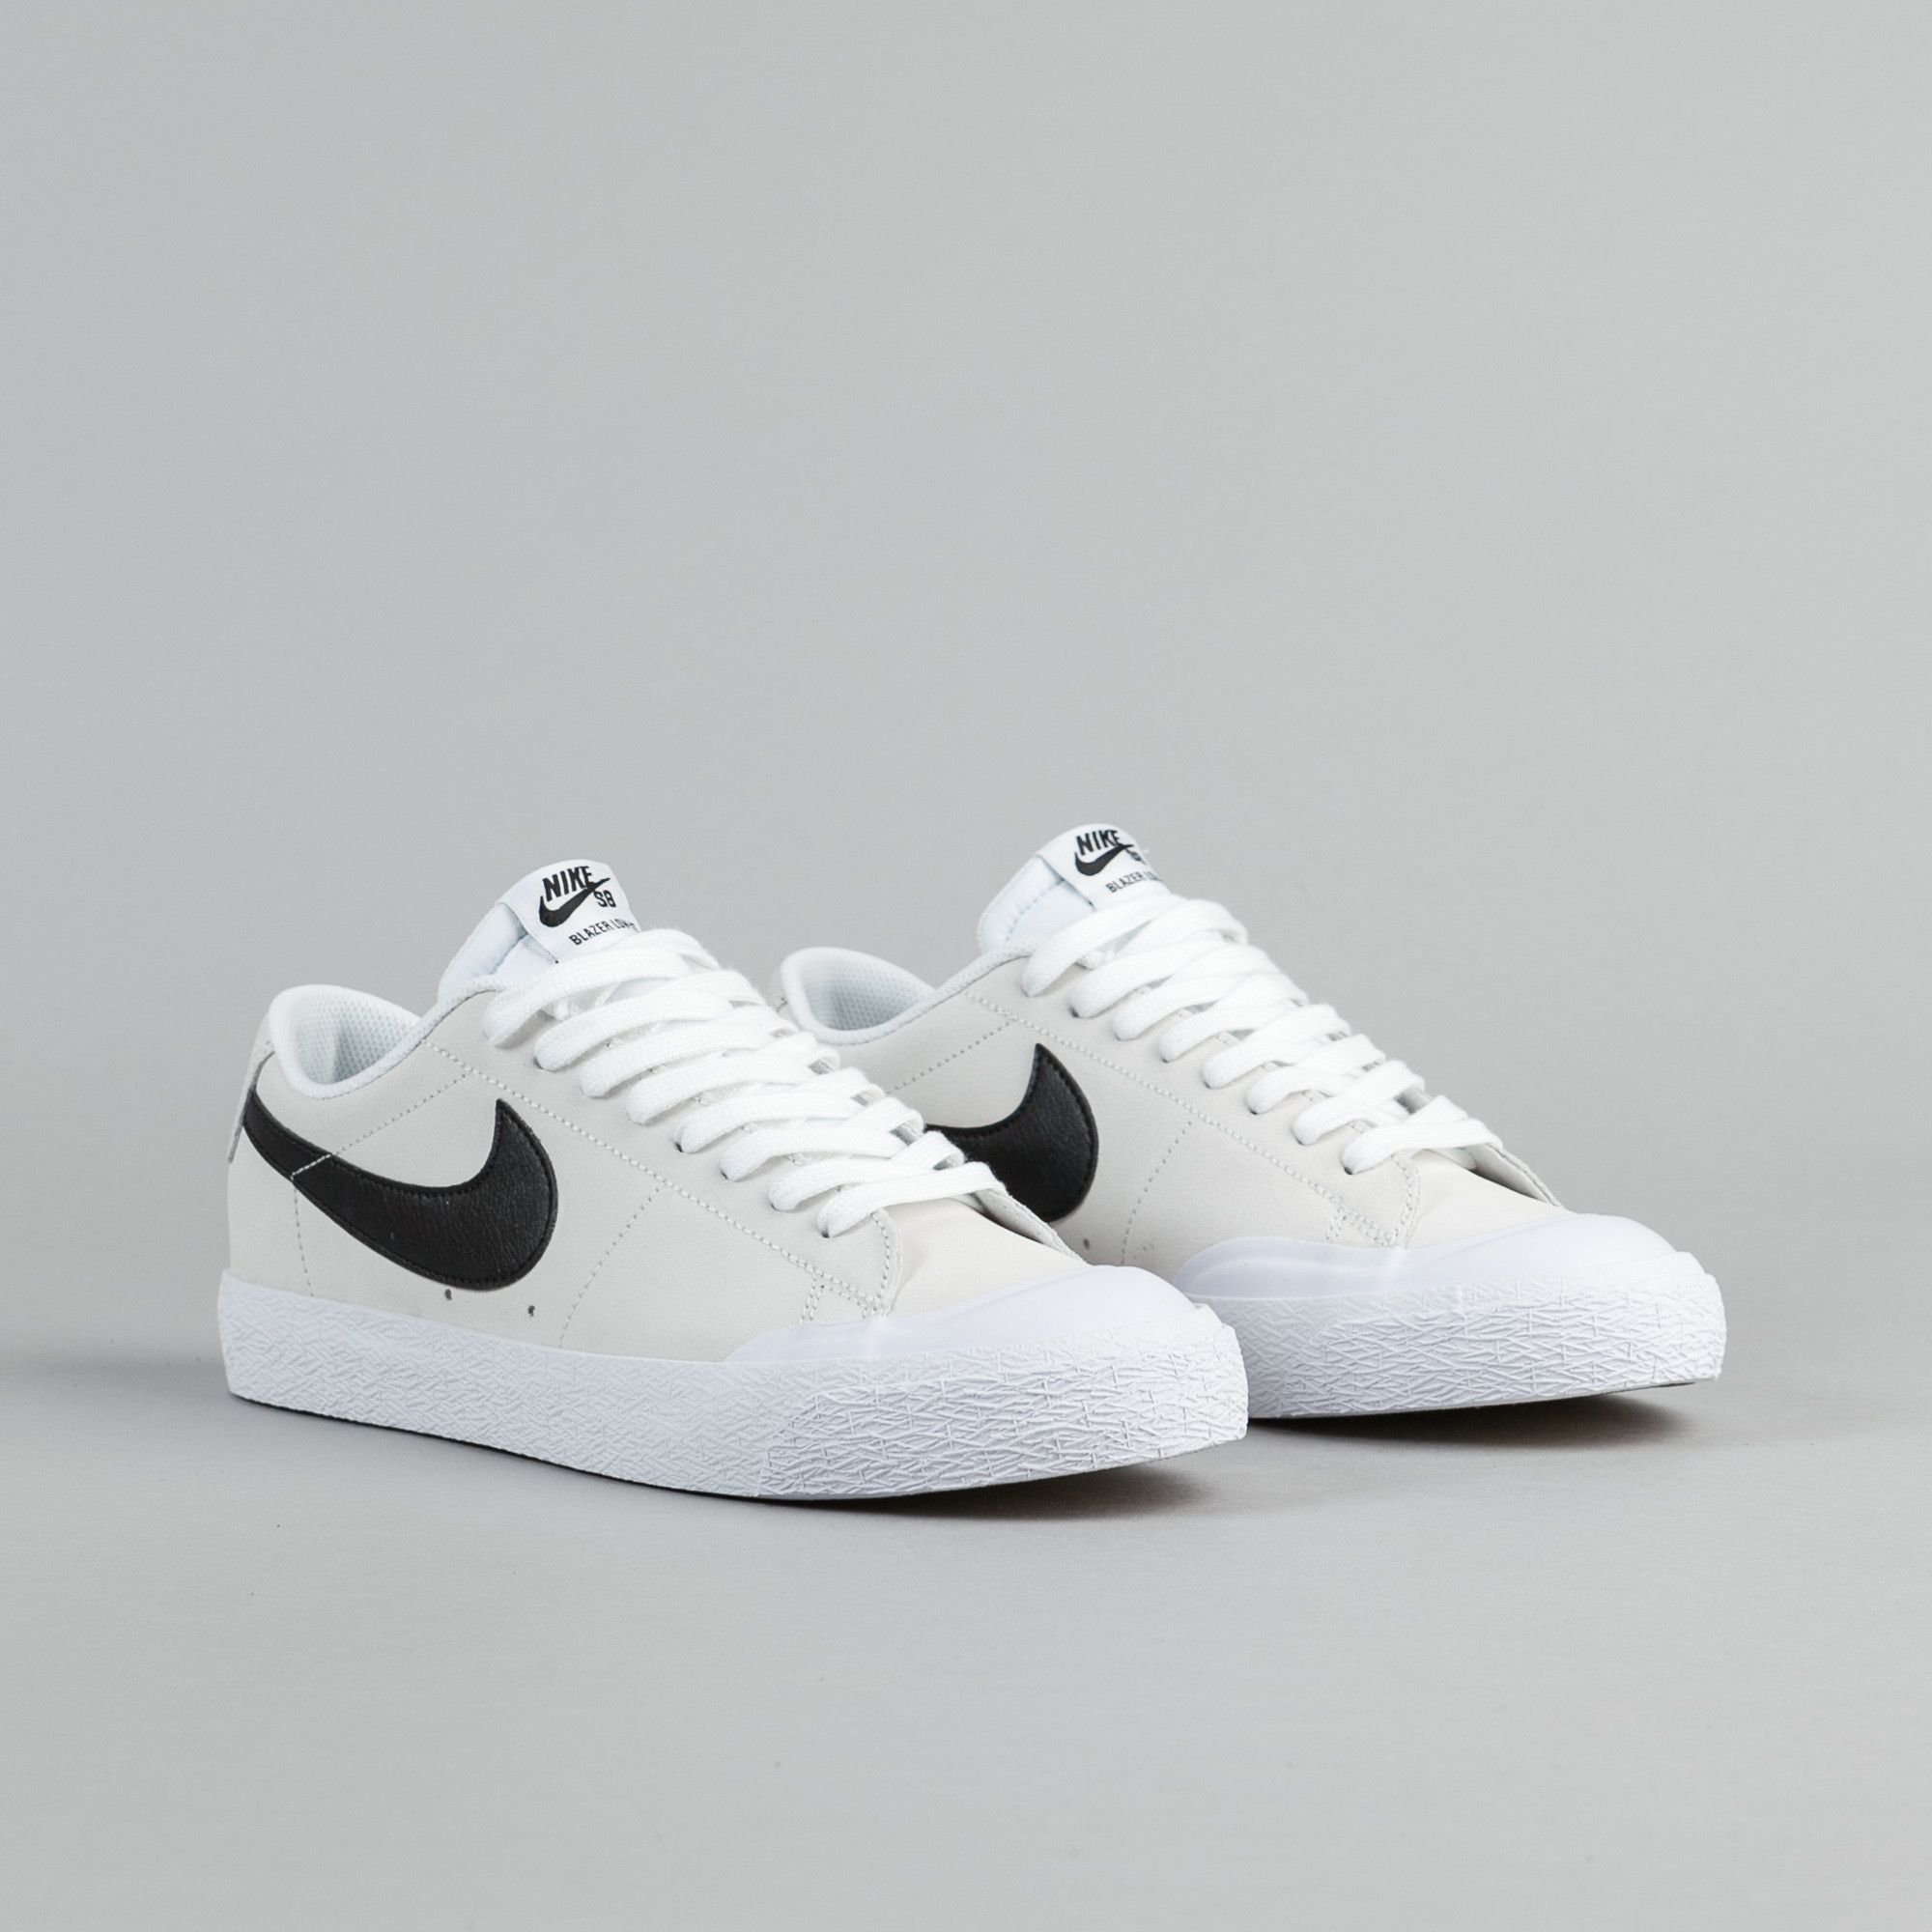 on sale b22c3 def12 Nike SB Blazer Low XT Shoes - Summit White   Black - White - Gum Light Brown